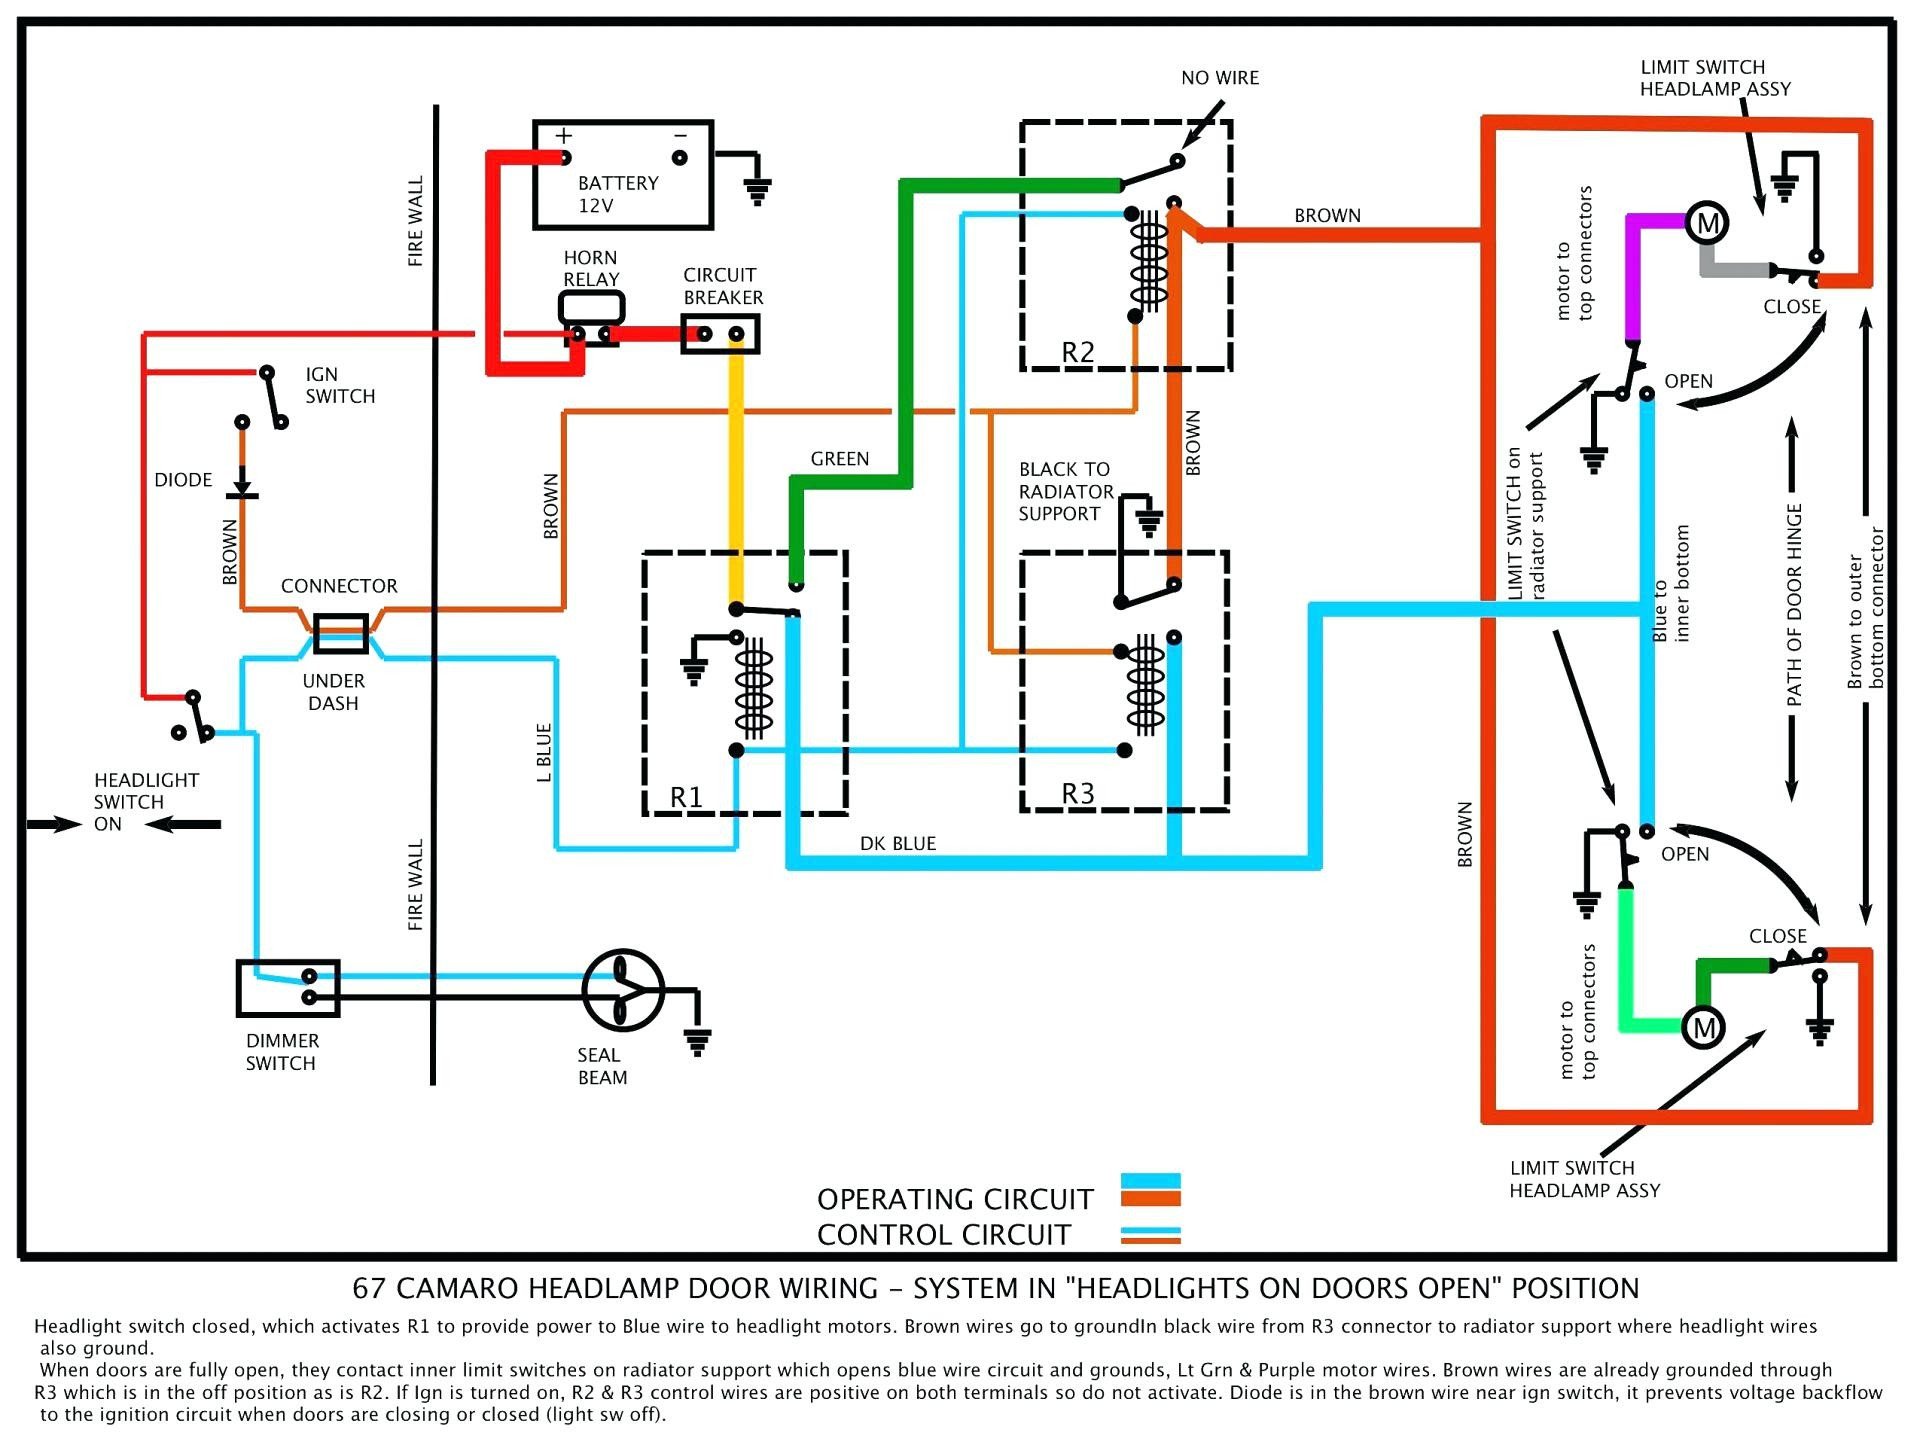 Victory Trailer Wiring Diagram Valid Pride Mobility Scooter Wheel - Victory Trailer Wiring Diagram